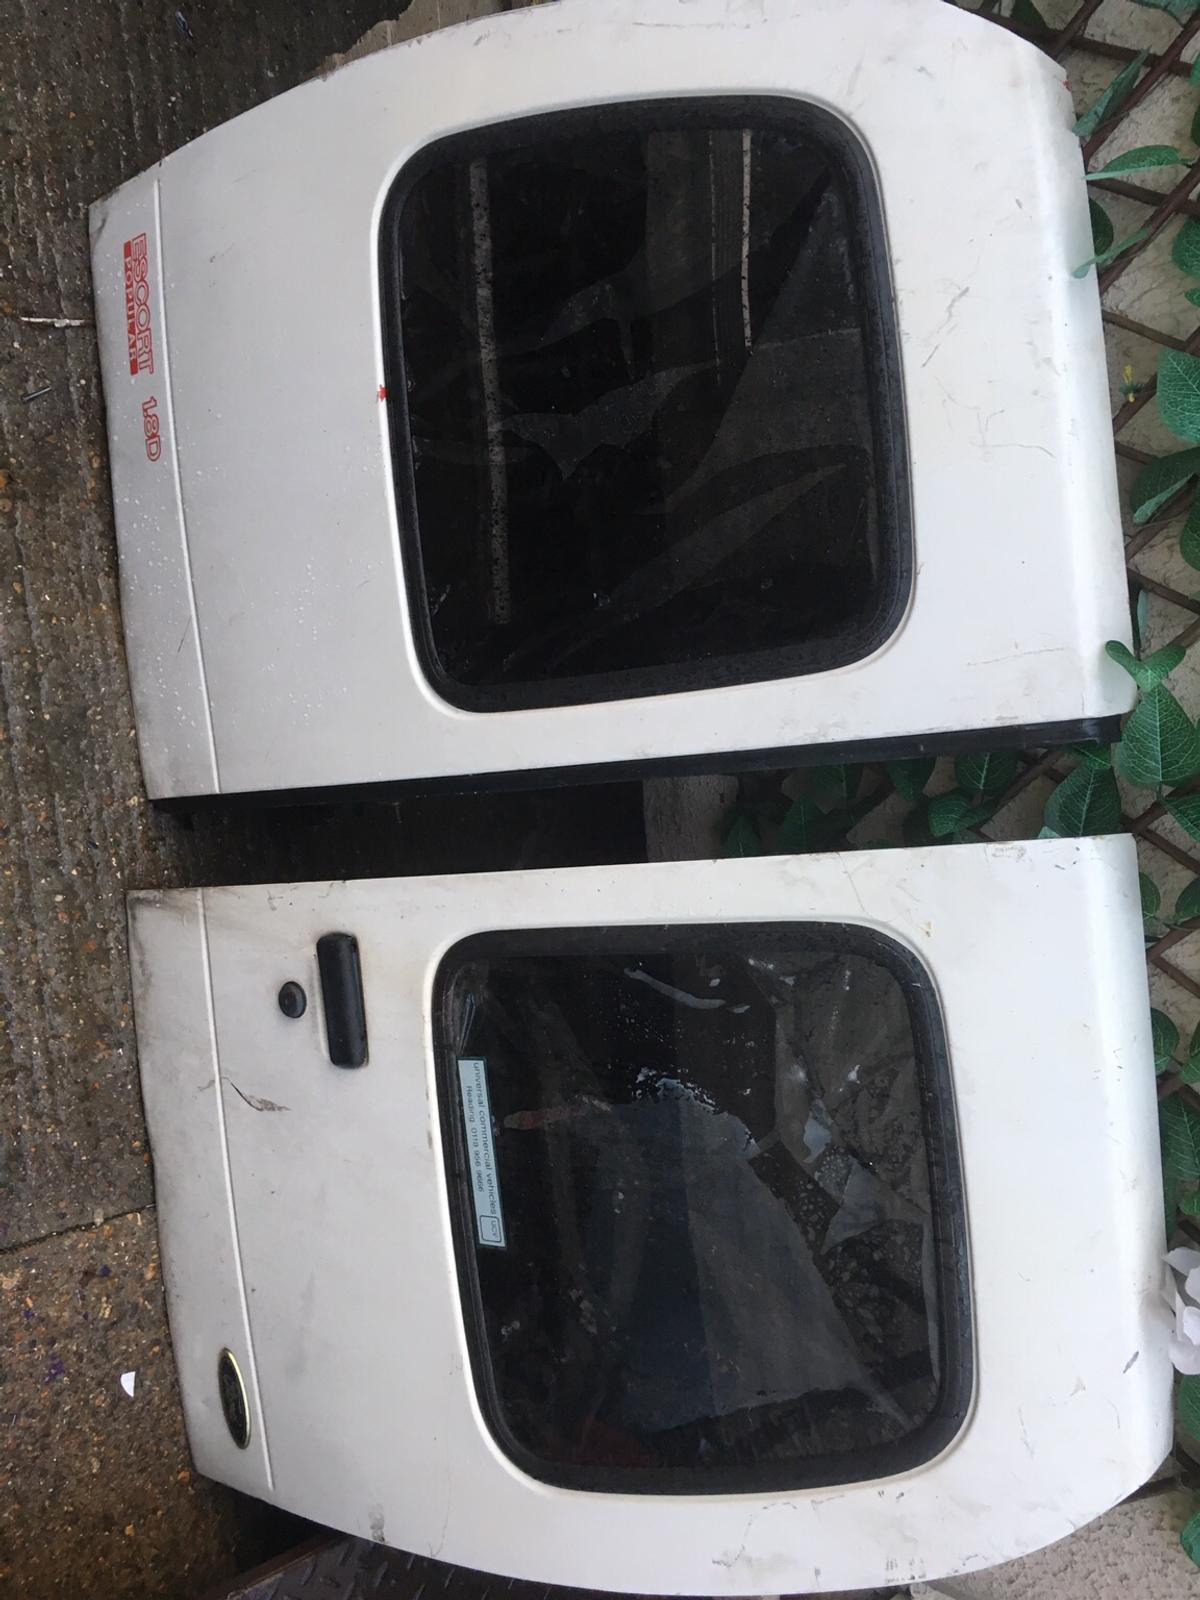 65112bc41eeaa5 Ford escort mark 2 van rear doors in NW10 Brent for £65.00 for sale ...